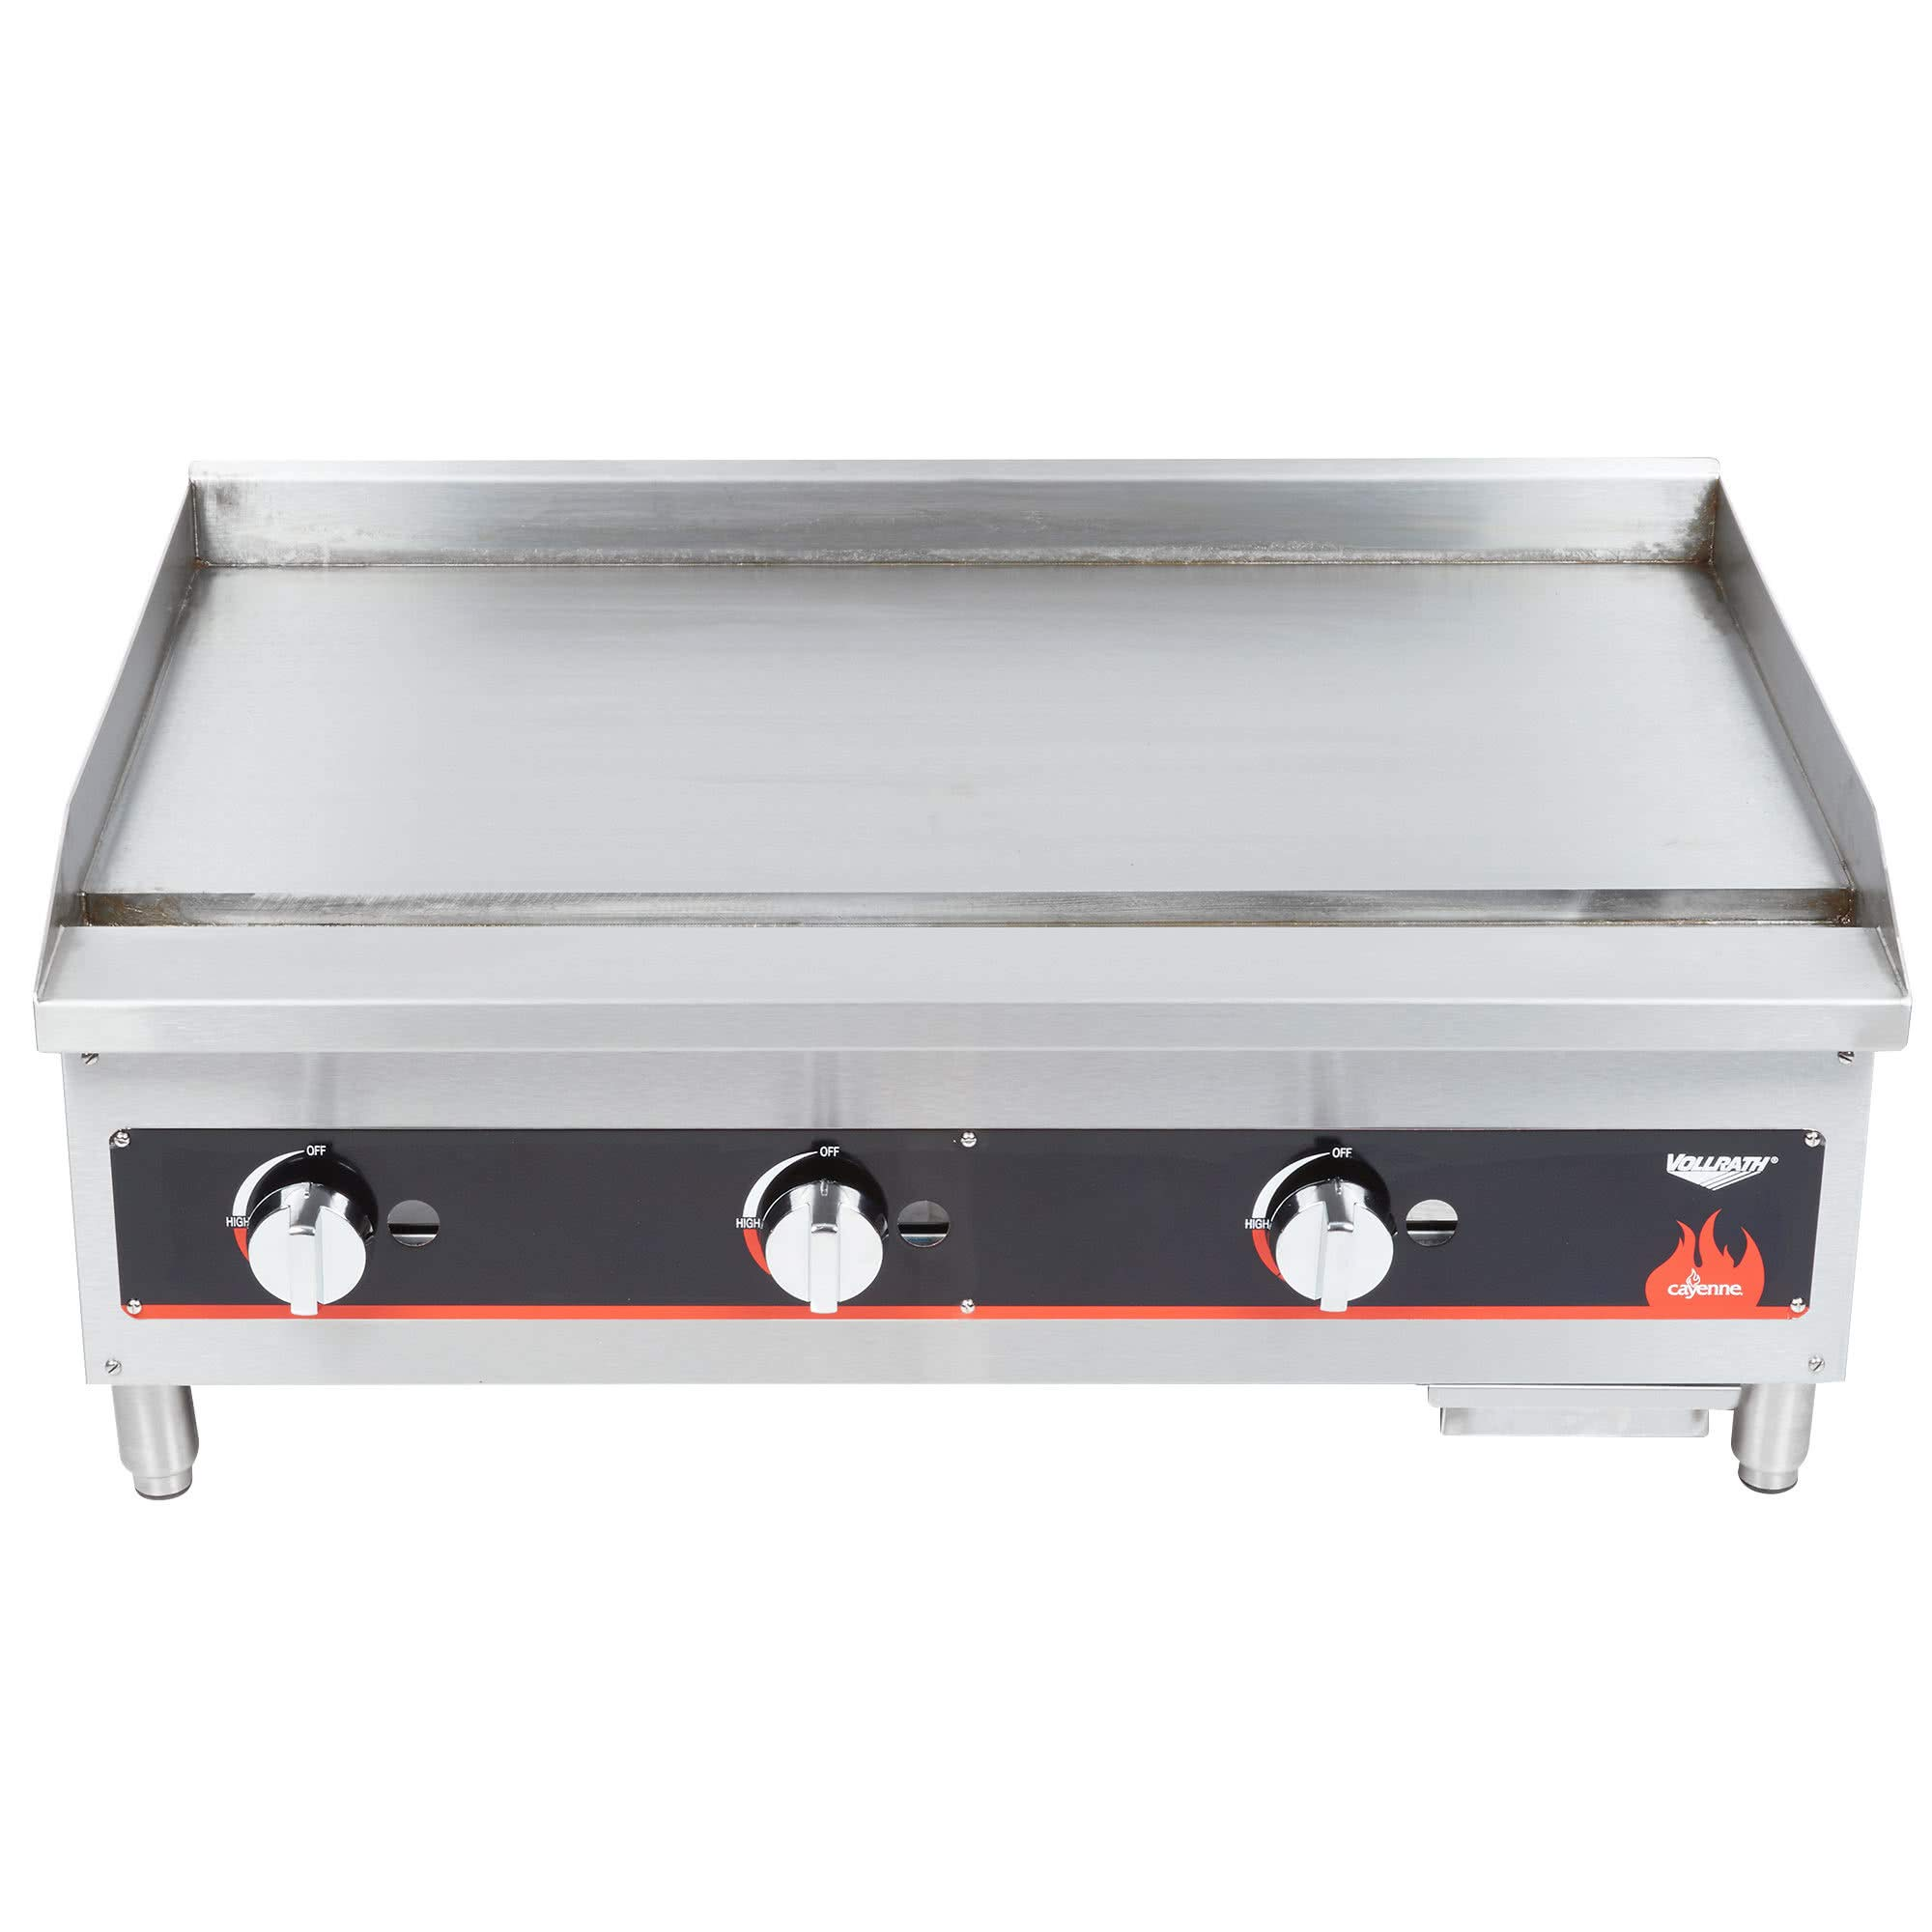 TableTop King 40721 Cayenne 36'' Flat Top Gas Countertop Griddle - Manual Control